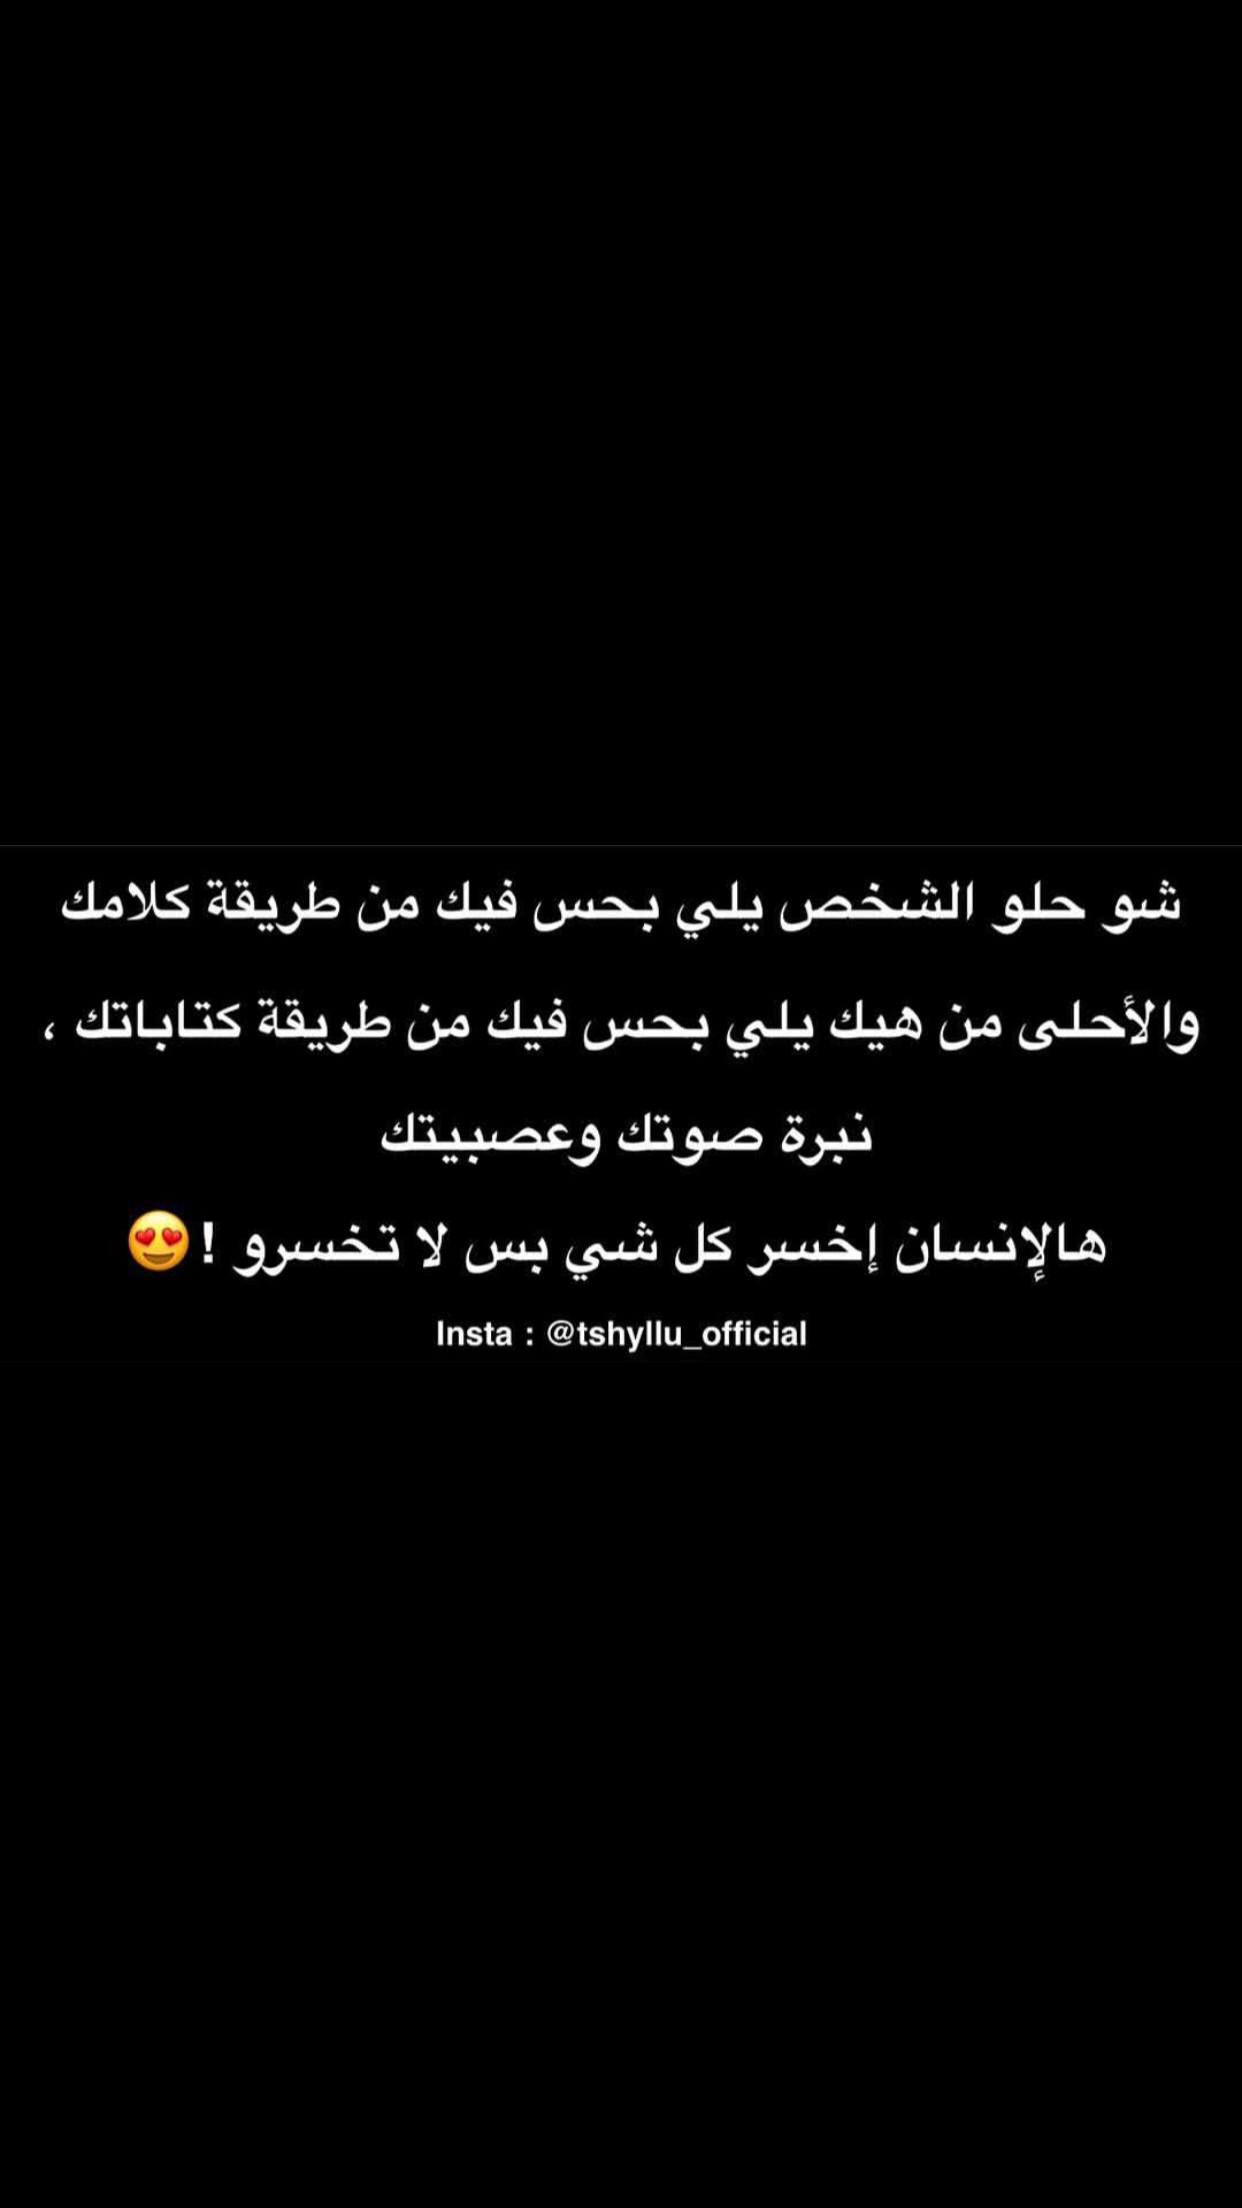 Pin By Sakina Ruh On Instagram Story Quotations Arabic Quotes Instagram Story